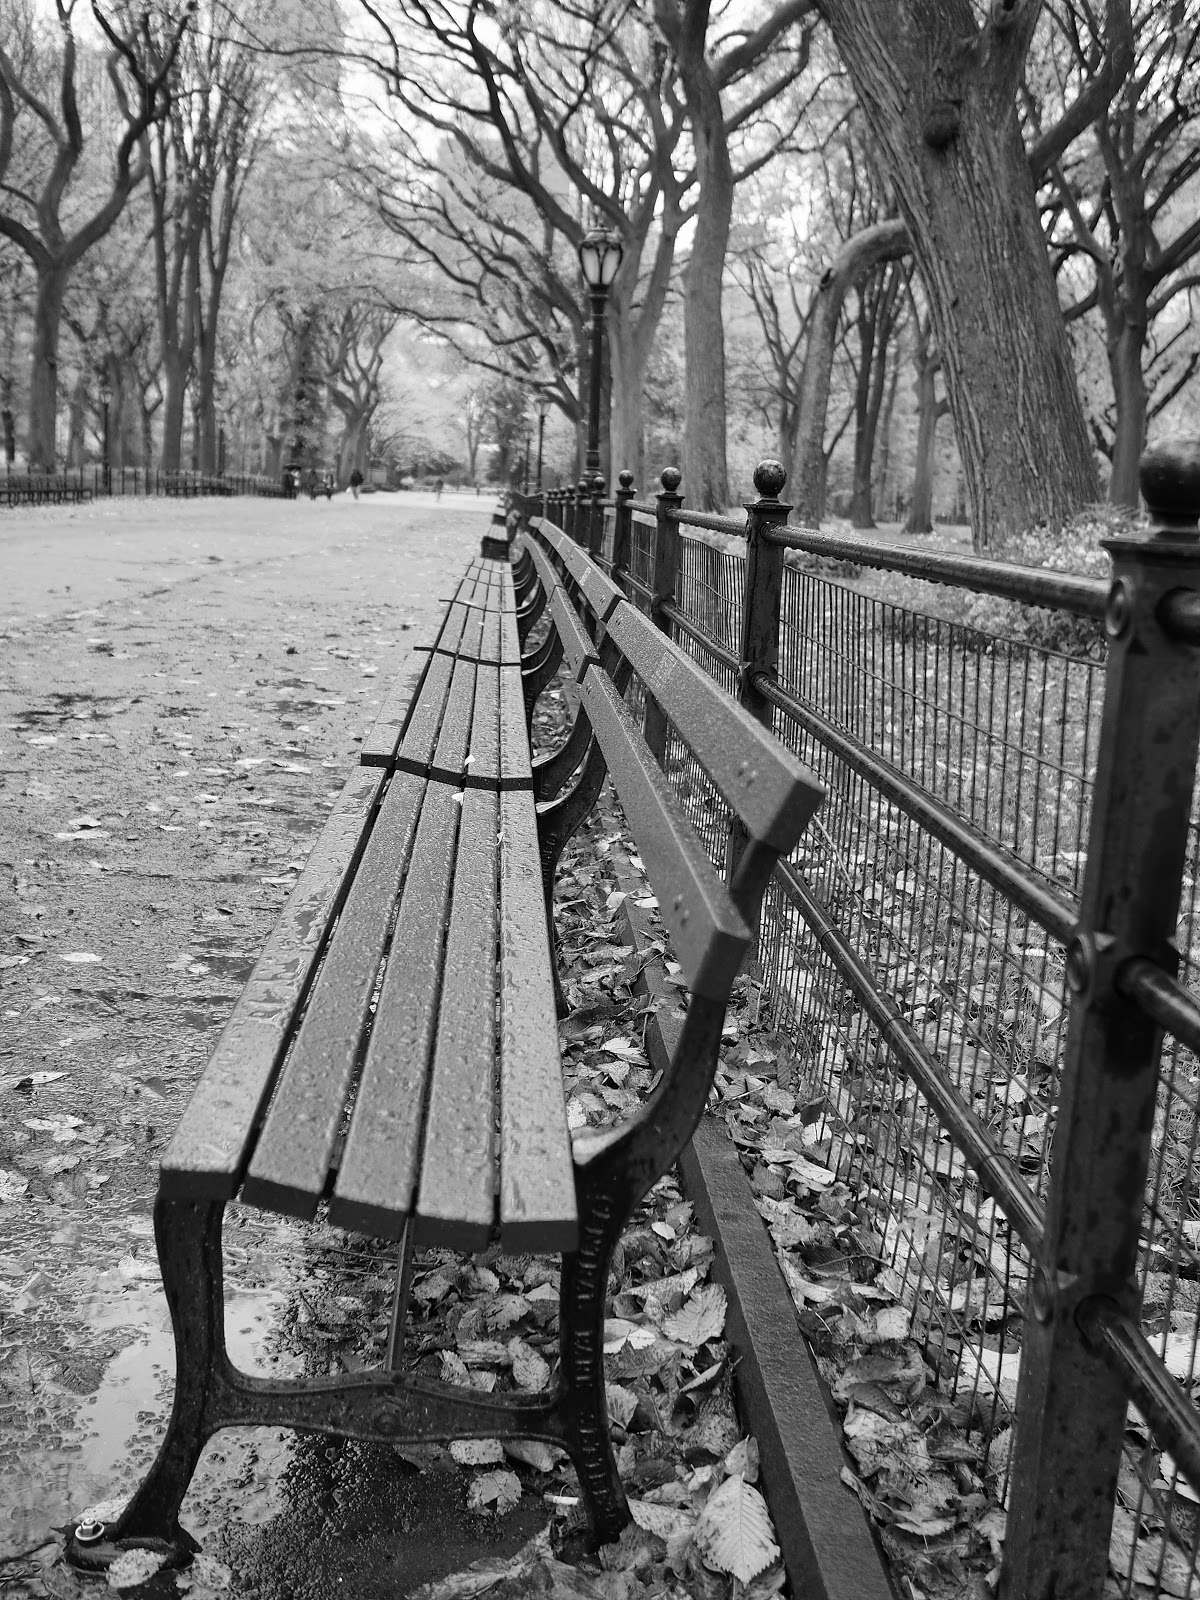 Empty Benches, #emptybenches #parkbenches #themall #centralpark #nyc #fall #fallfoliage #rainyday 2014